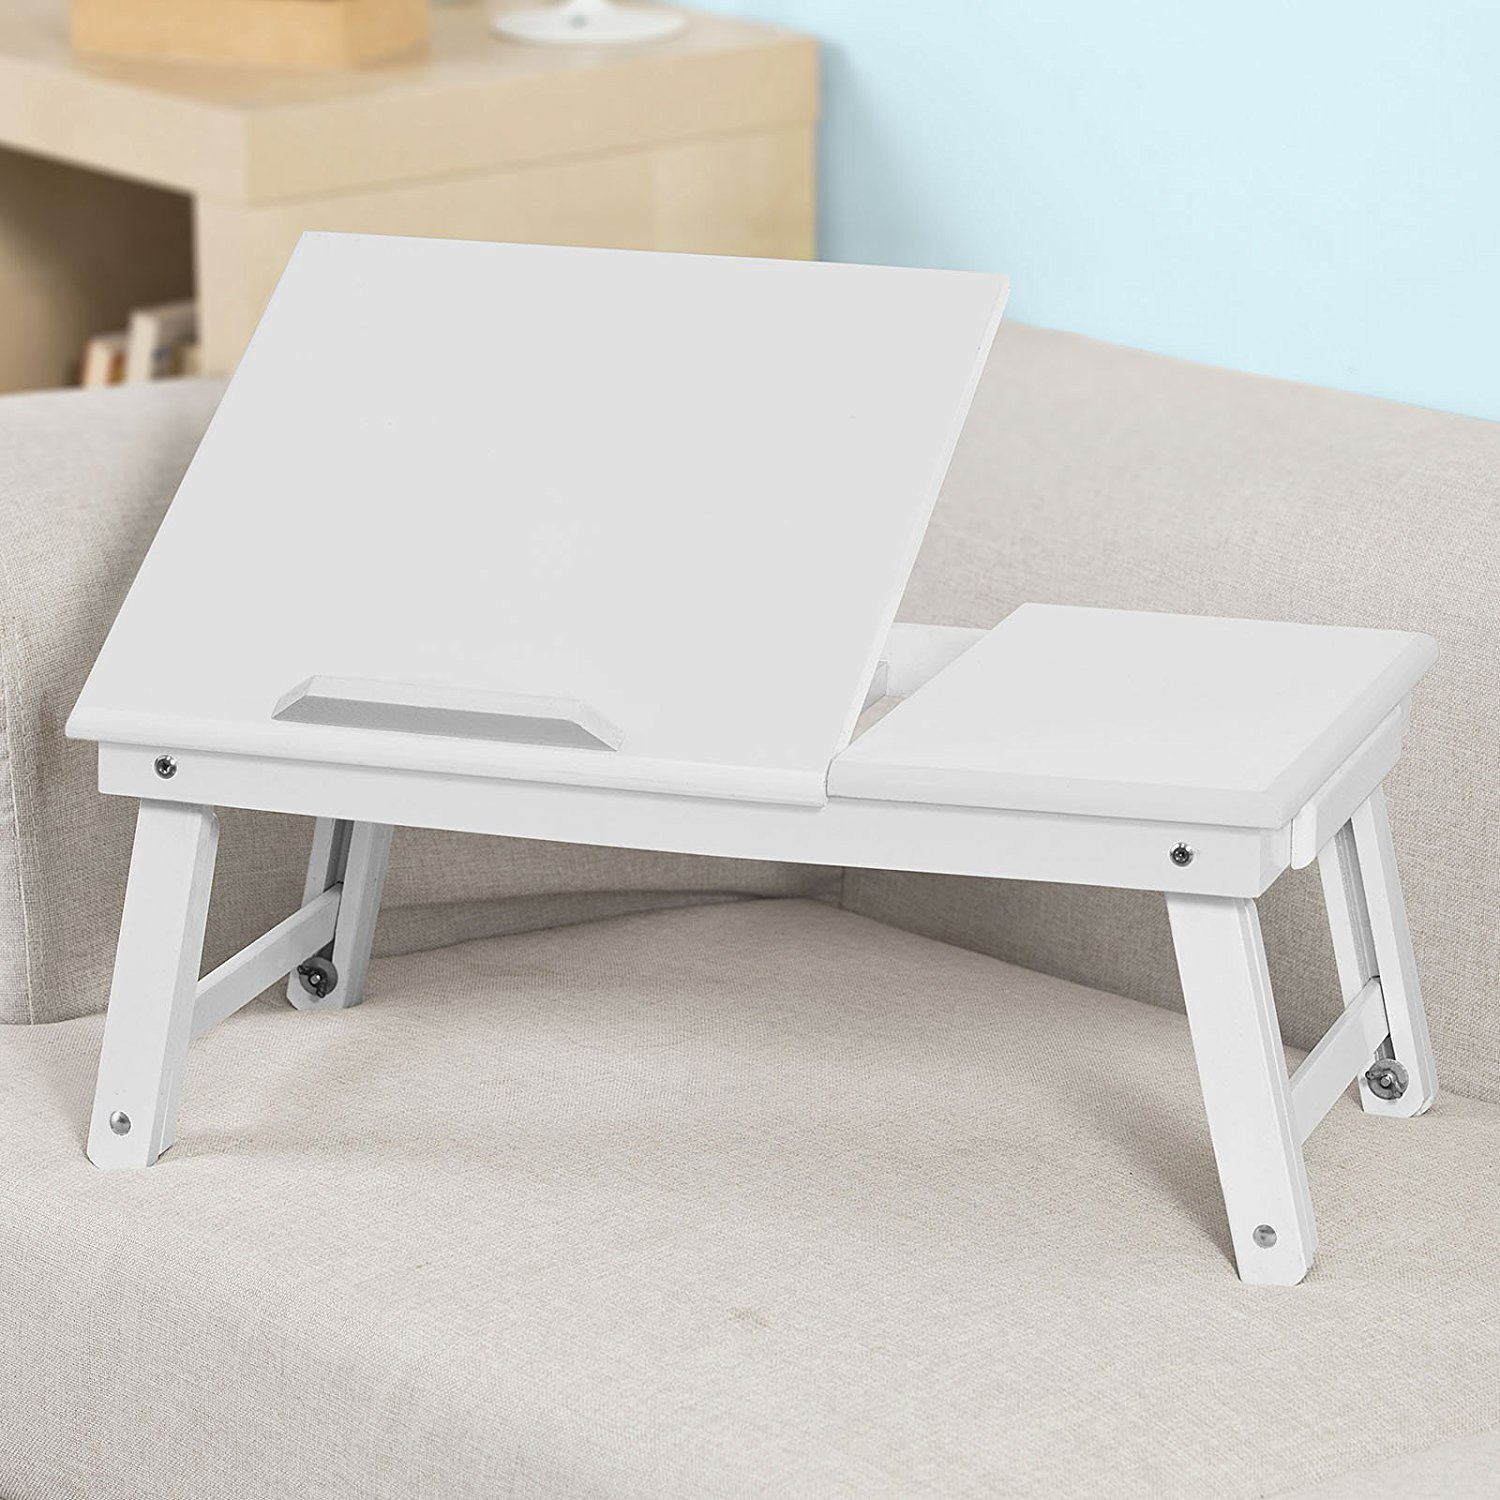 Sobuy Shop Sobuy Wood Foldable Notebook Laptop Table Folding Food Bed Lap Top Tray Table Desk Fbt02 W